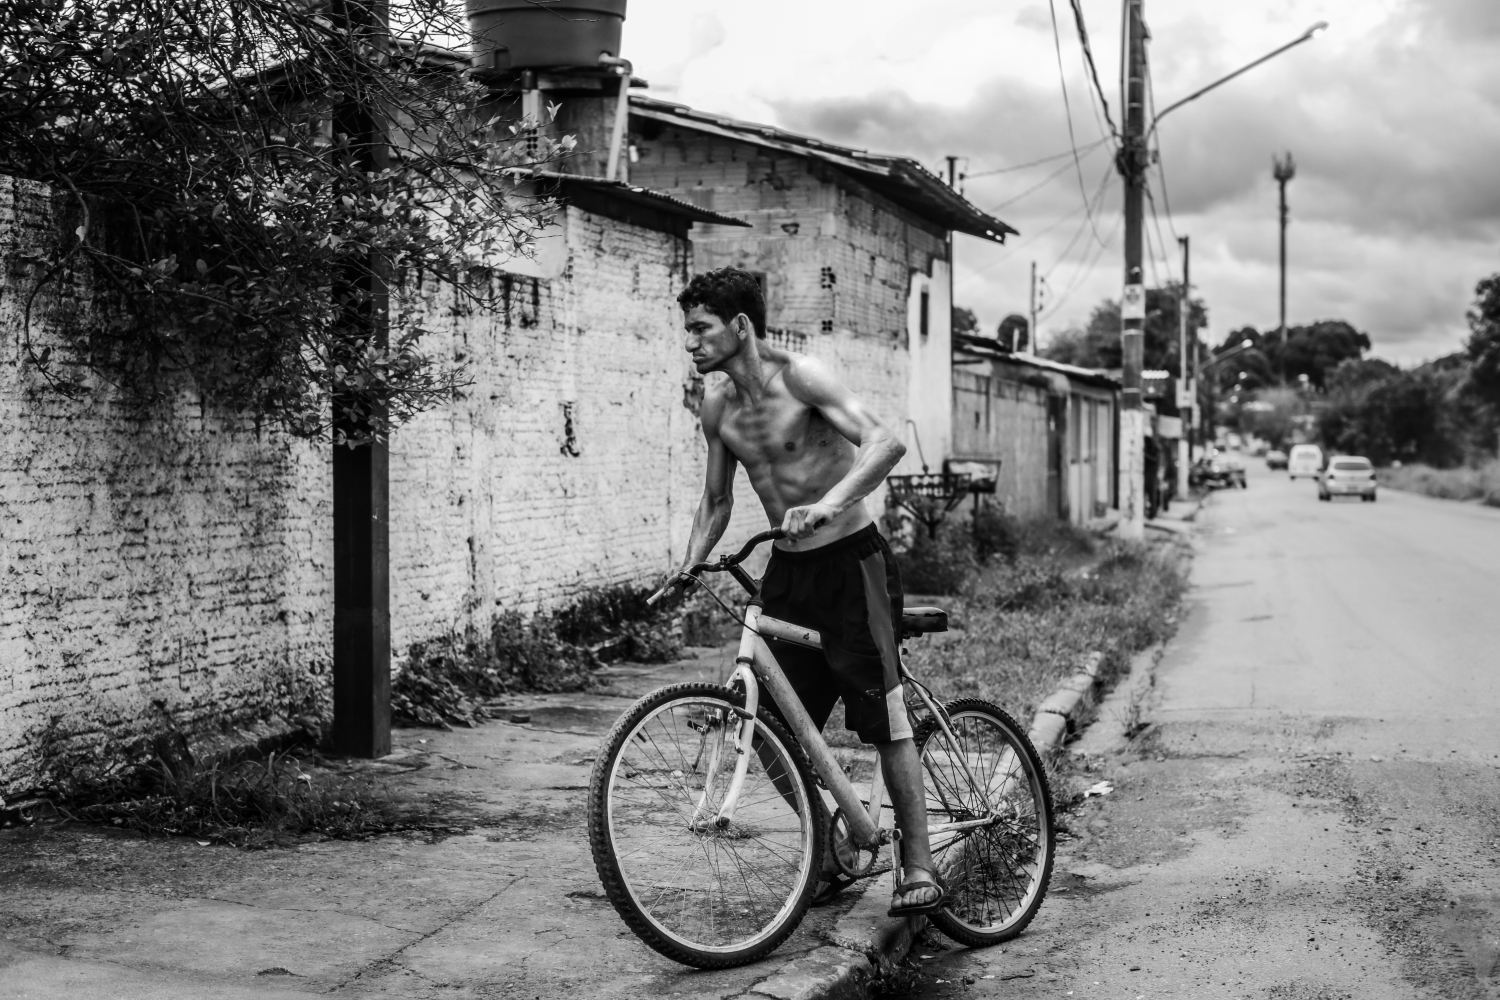 photography of a thin man on a bike.